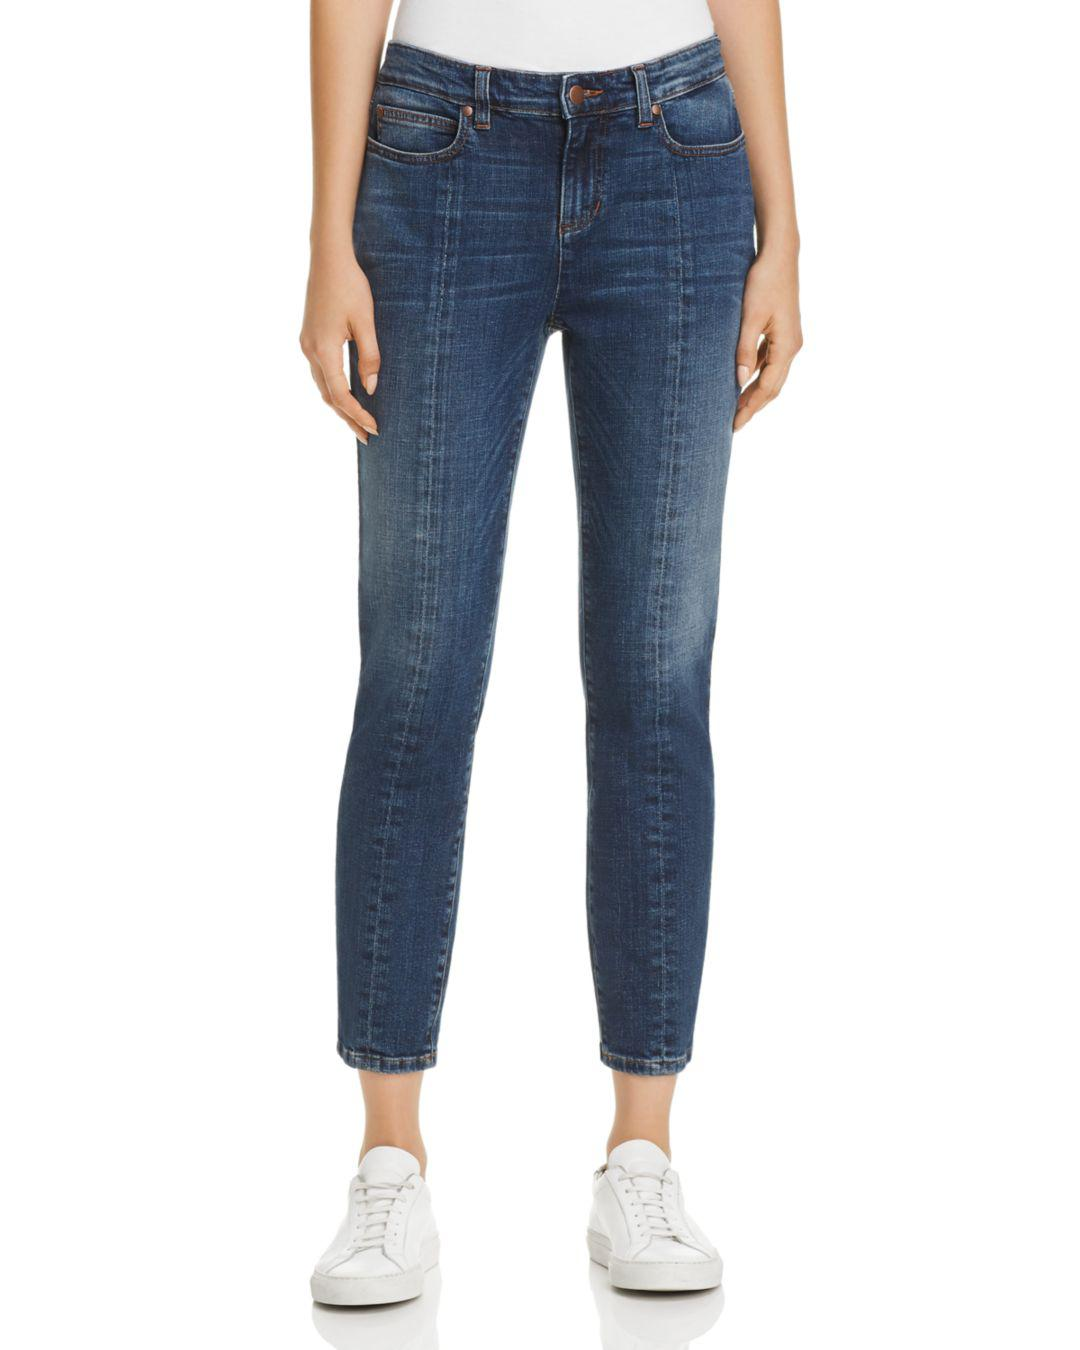 8c47863dcdcd5 Lyst - Eileen Fisher Seamed Crop Jeans In Aged Indigo in Blue